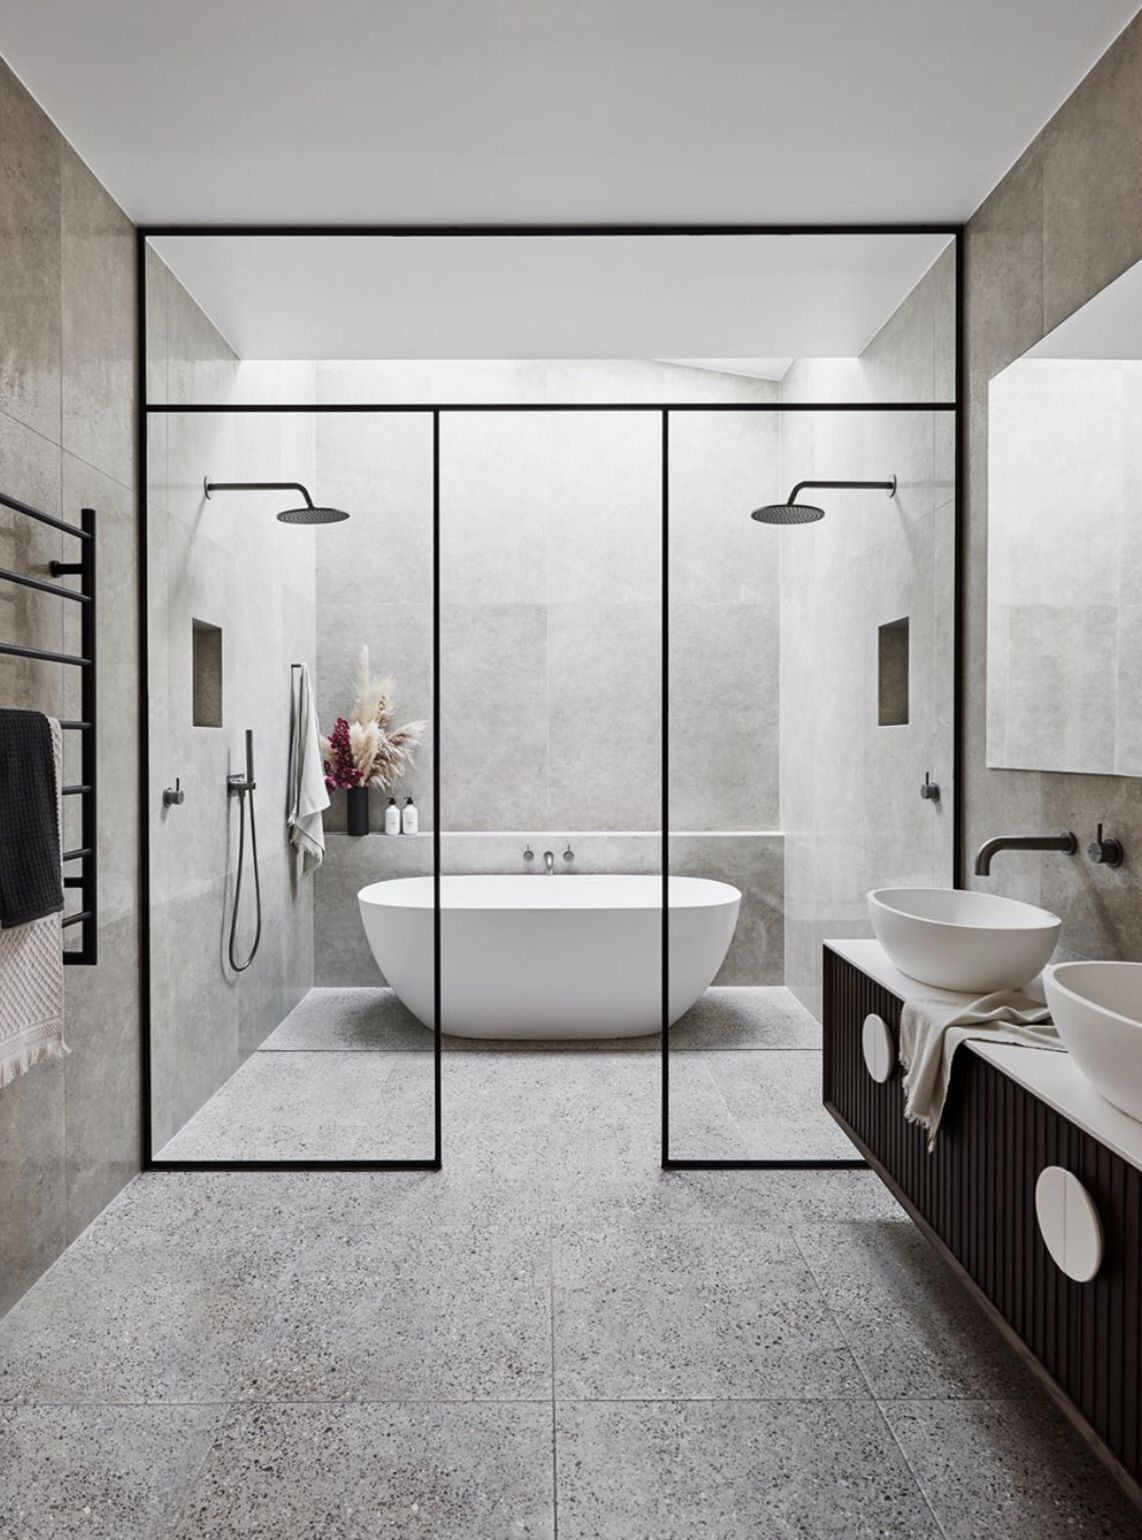 Large Bathroom With Wetroom Large Contemporary Bathroom With Wetroom Black Tapware Archi In 2020 Modern Small Bathrooms Large Bathrooms Master Bathroom Design